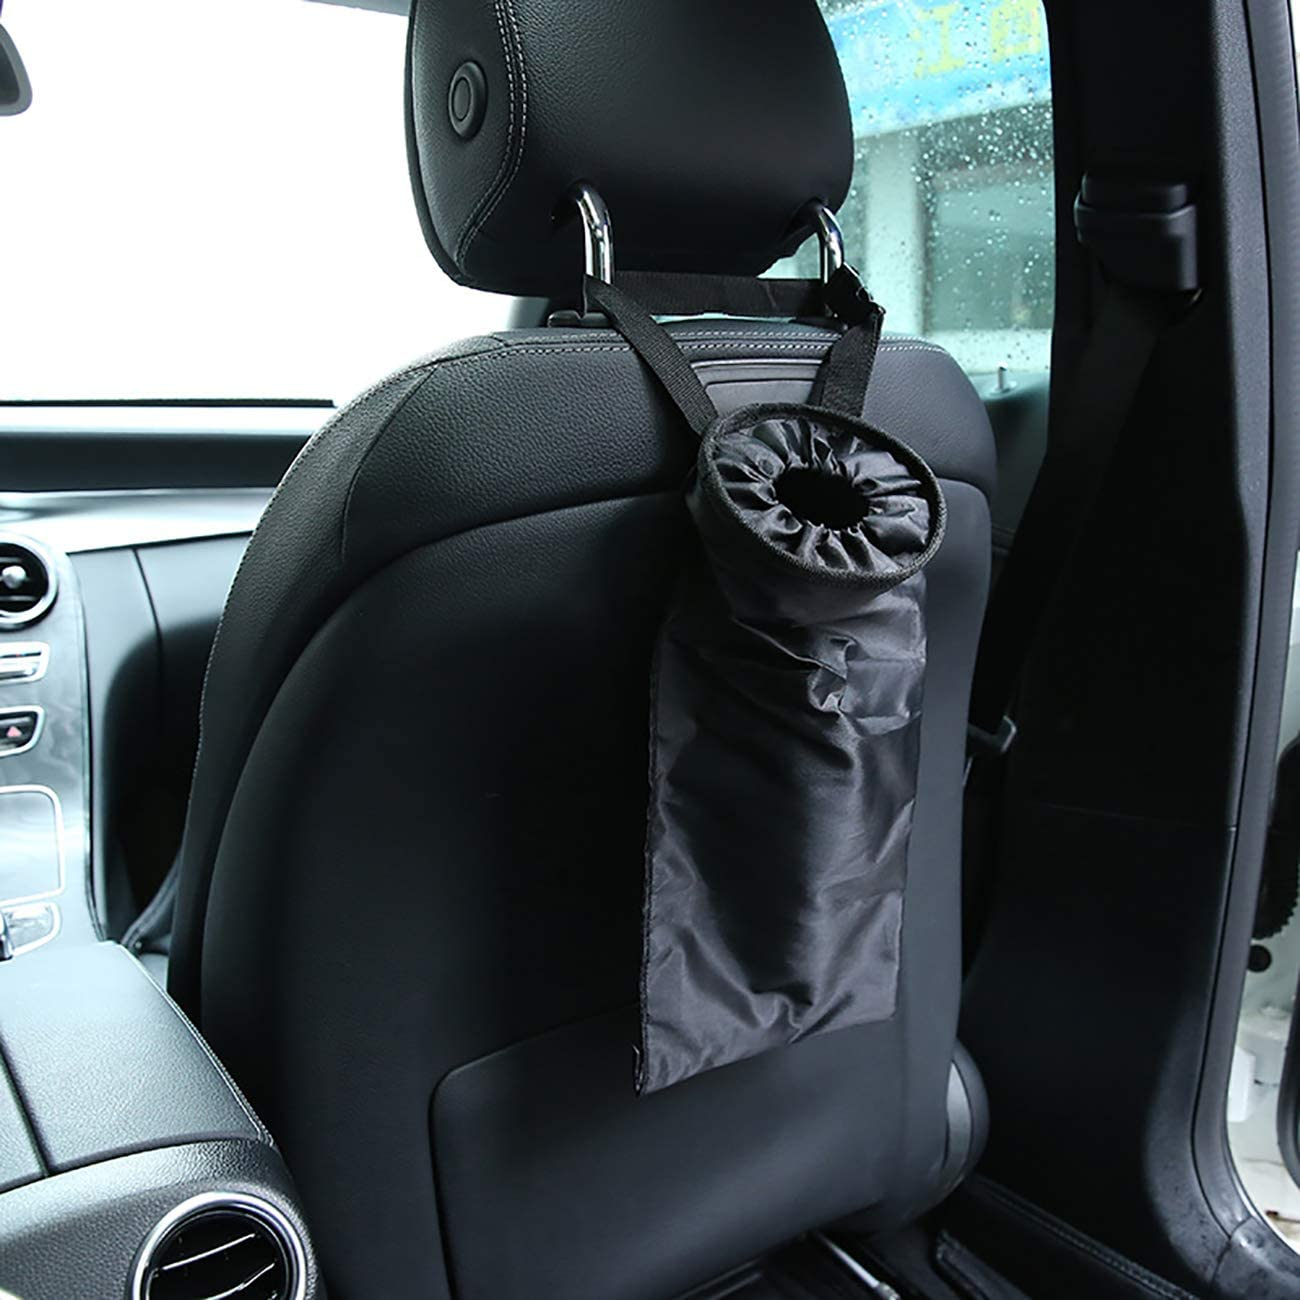 Uheng Car Trash Bags Car Trash Can Washable Eco-Friendly Seat Back Hanging Car Vehicle Headrest Garbage Litter Rubbish Bag for Travelling Outdoor Home Black, 2Pack